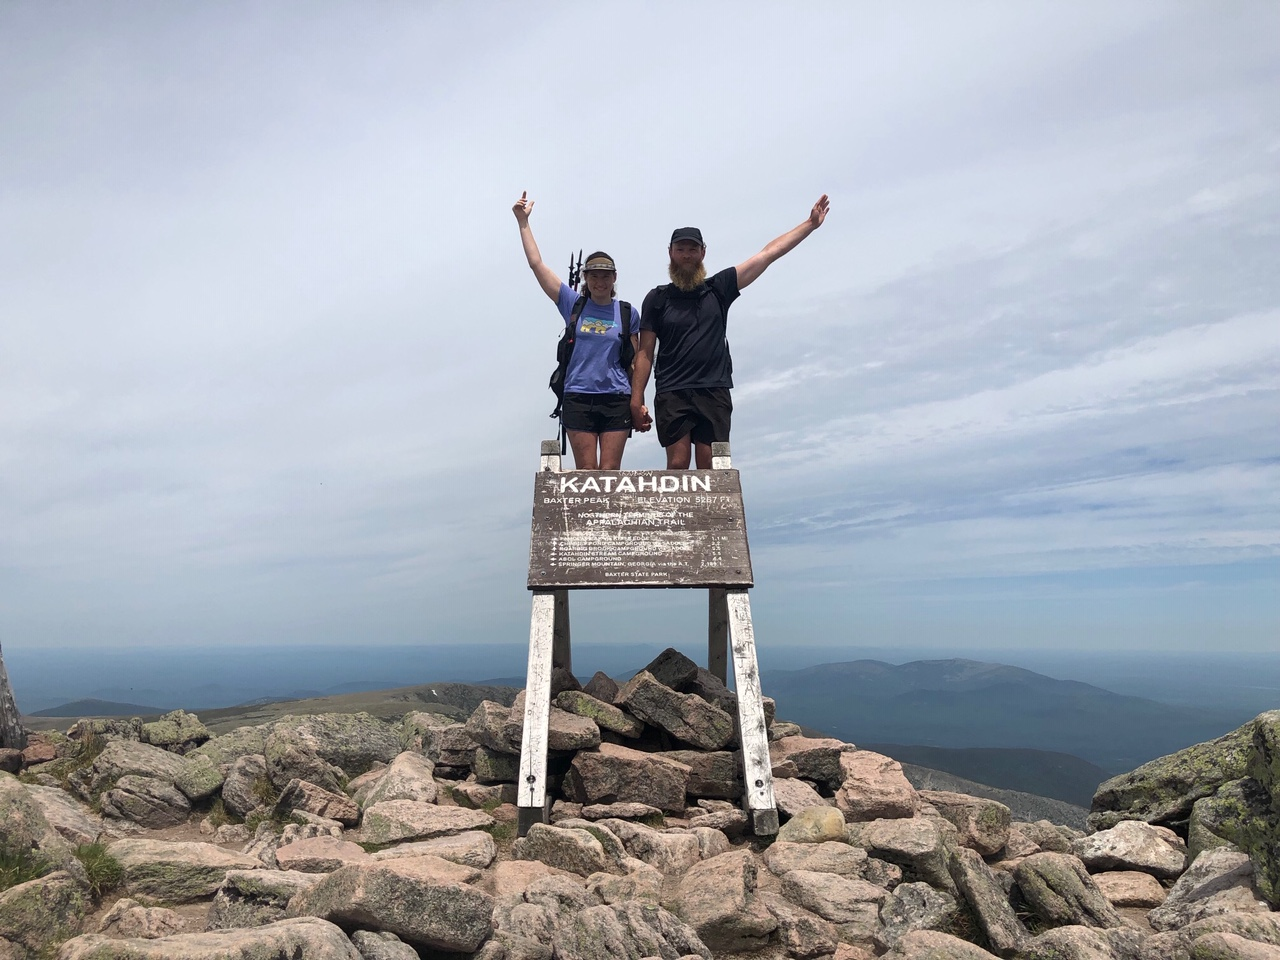 2019 Appalachian Trail Thru-Hiker Completions: June 23 - July 9 - The Trek